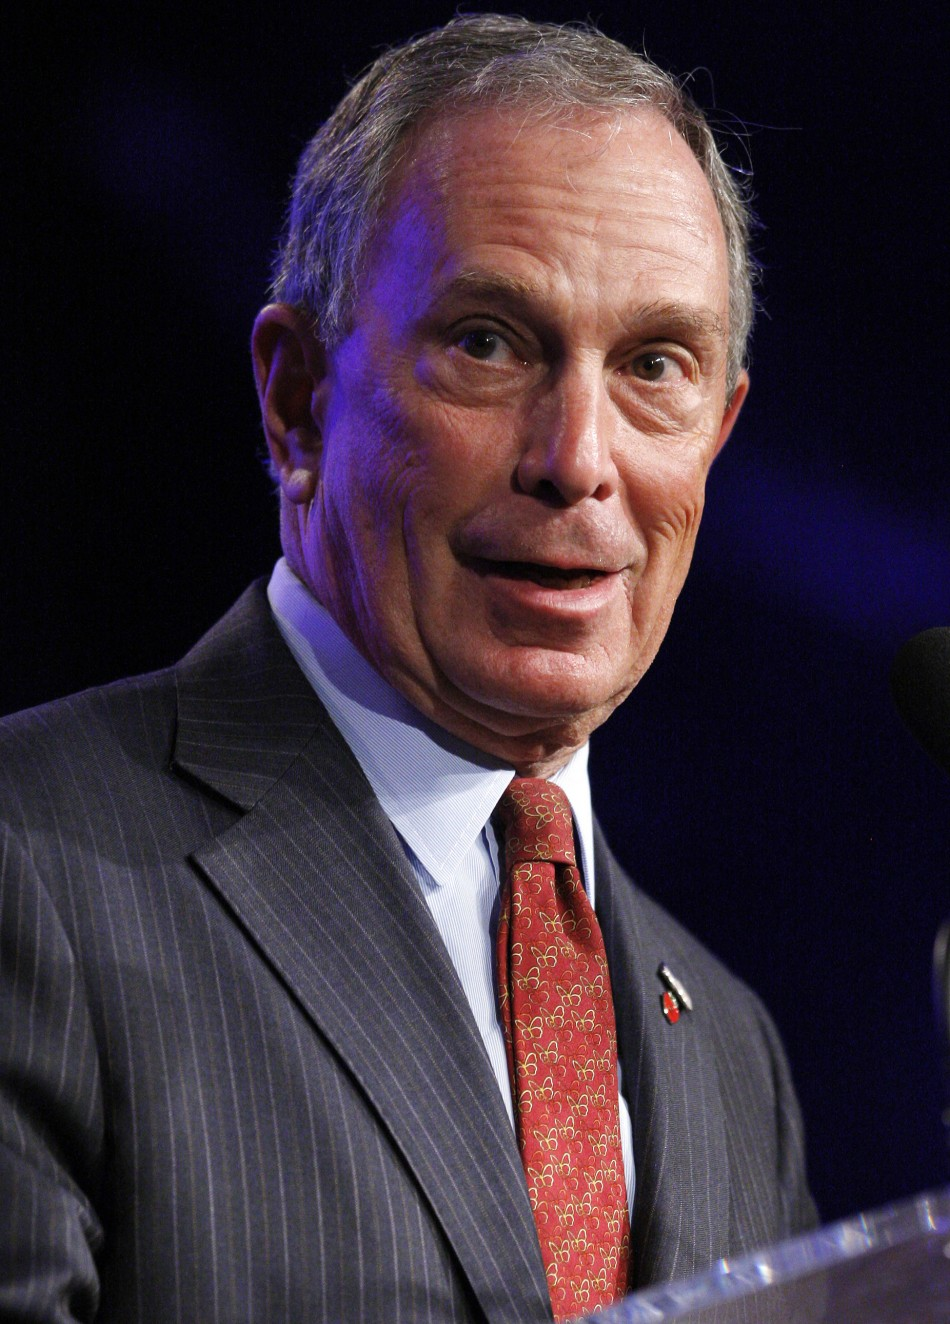 No: 10 Michael Bloomberg